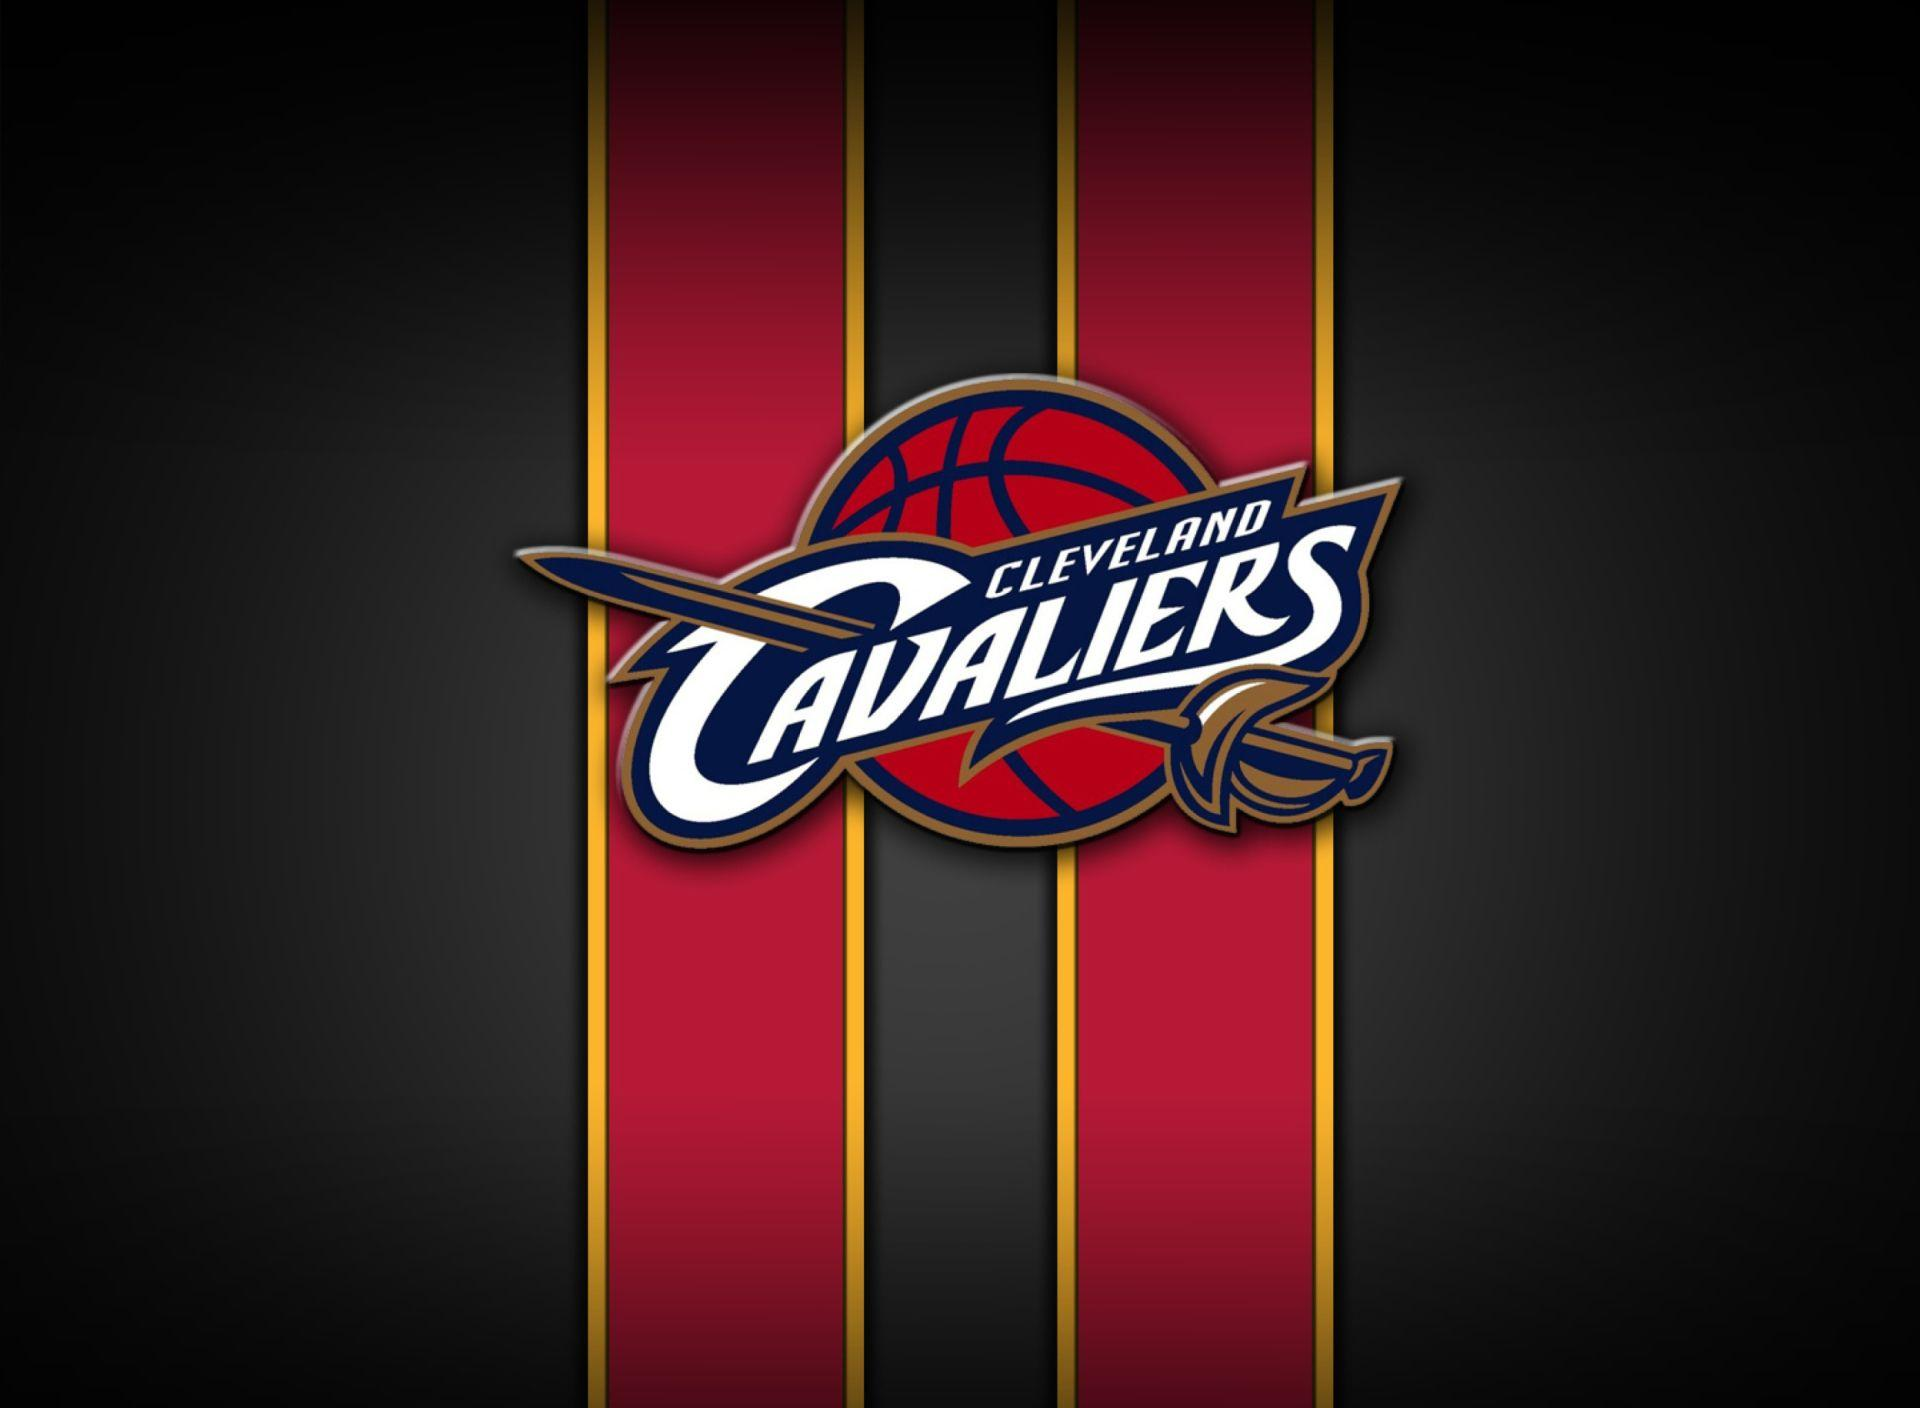 Cleveland cavaliers wallpapers wallpaper cave - Cleveland cavaliers wallpaper ...